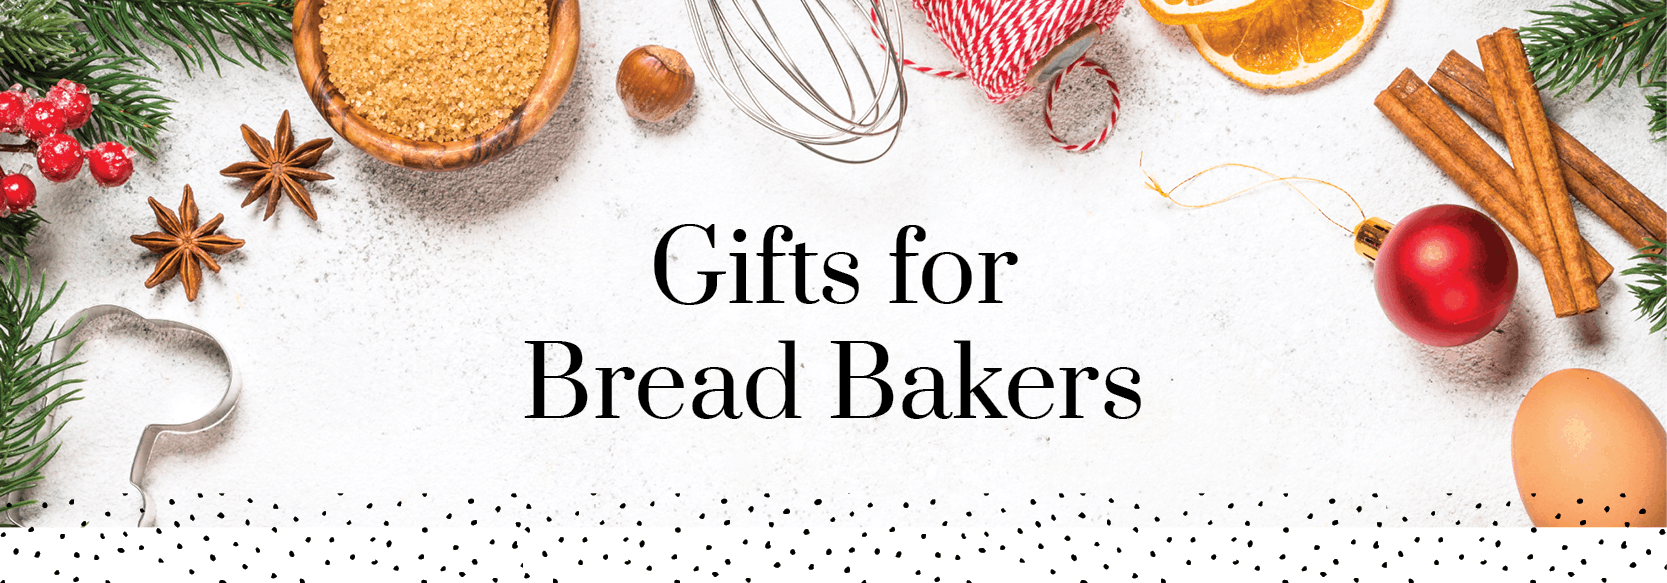 Gifts for Bread Bakers